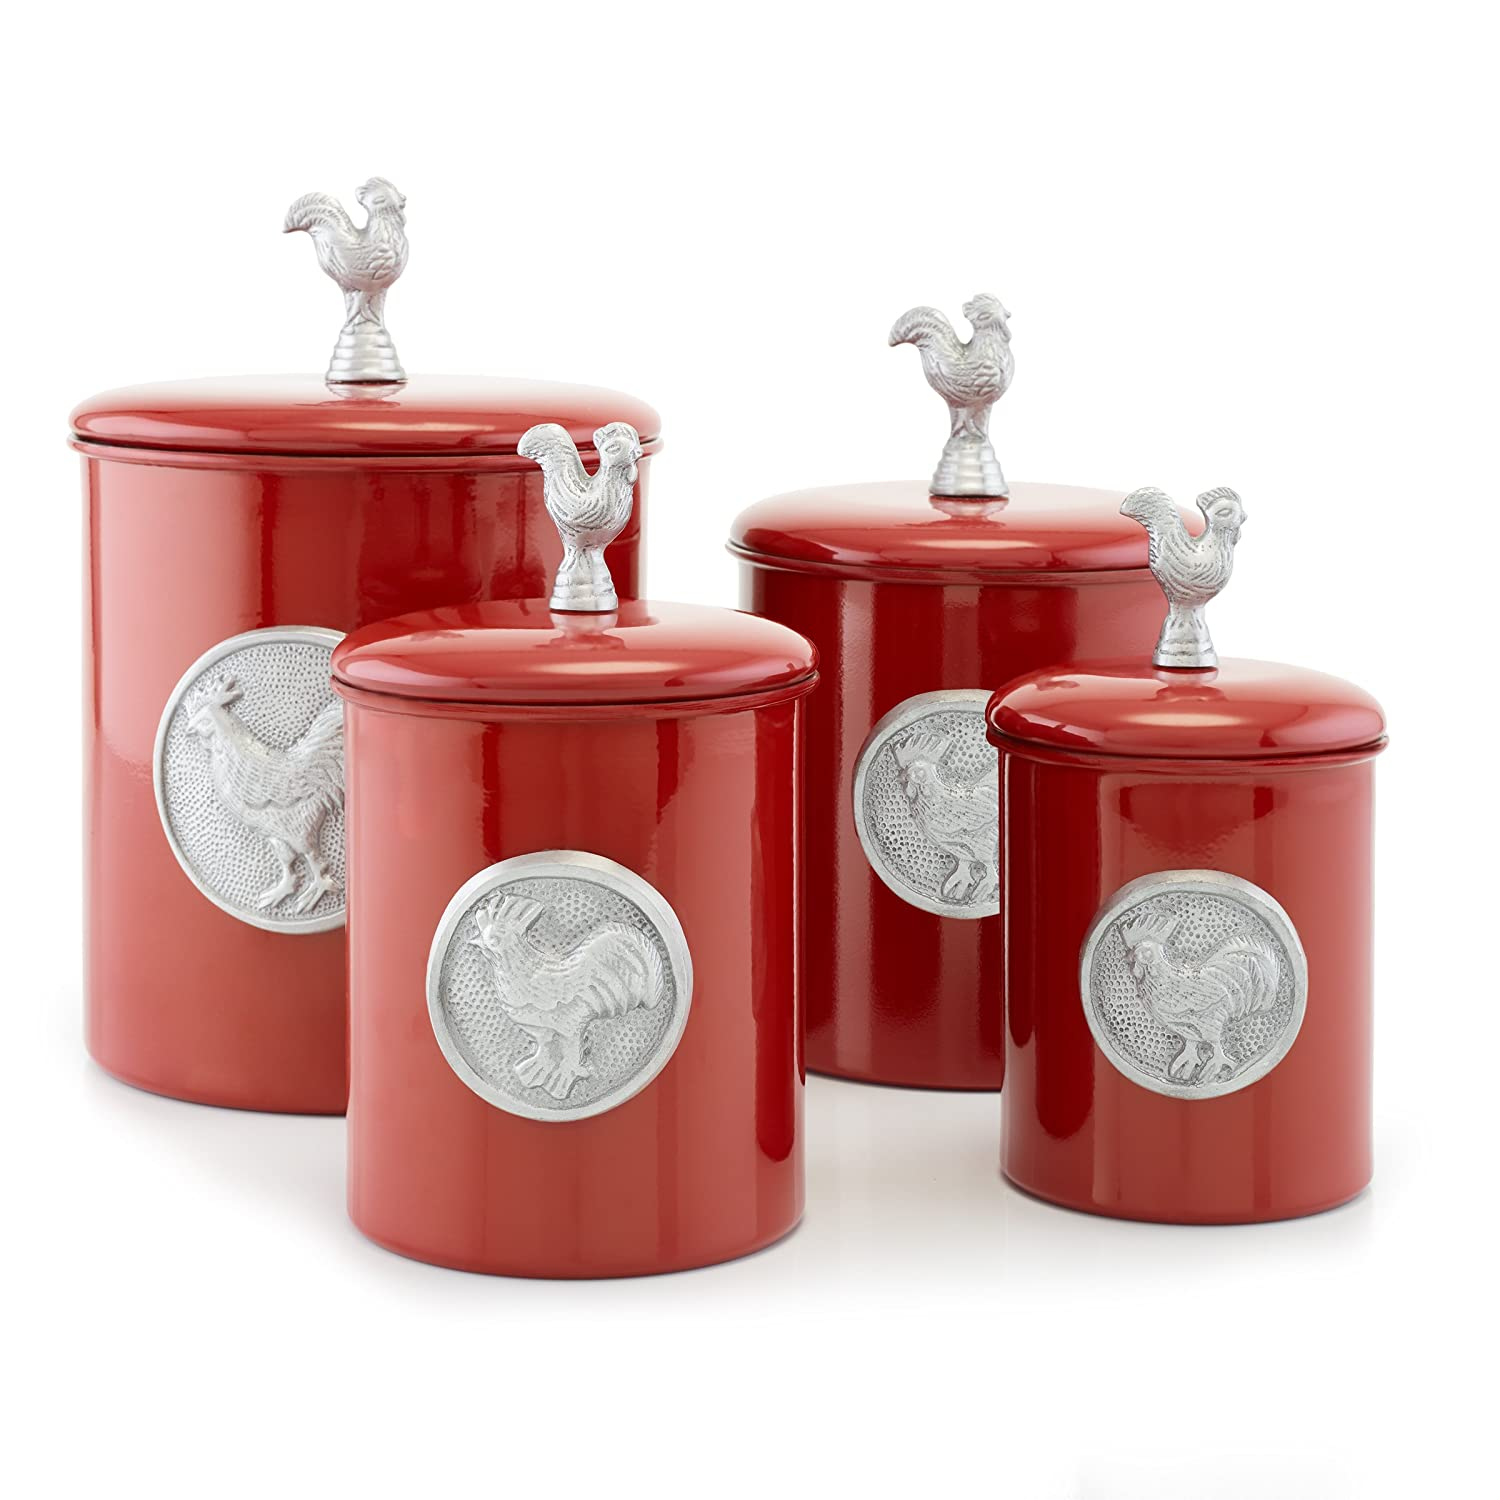 Old Dutch 4Piece Rooster Canister Set, Red 1743